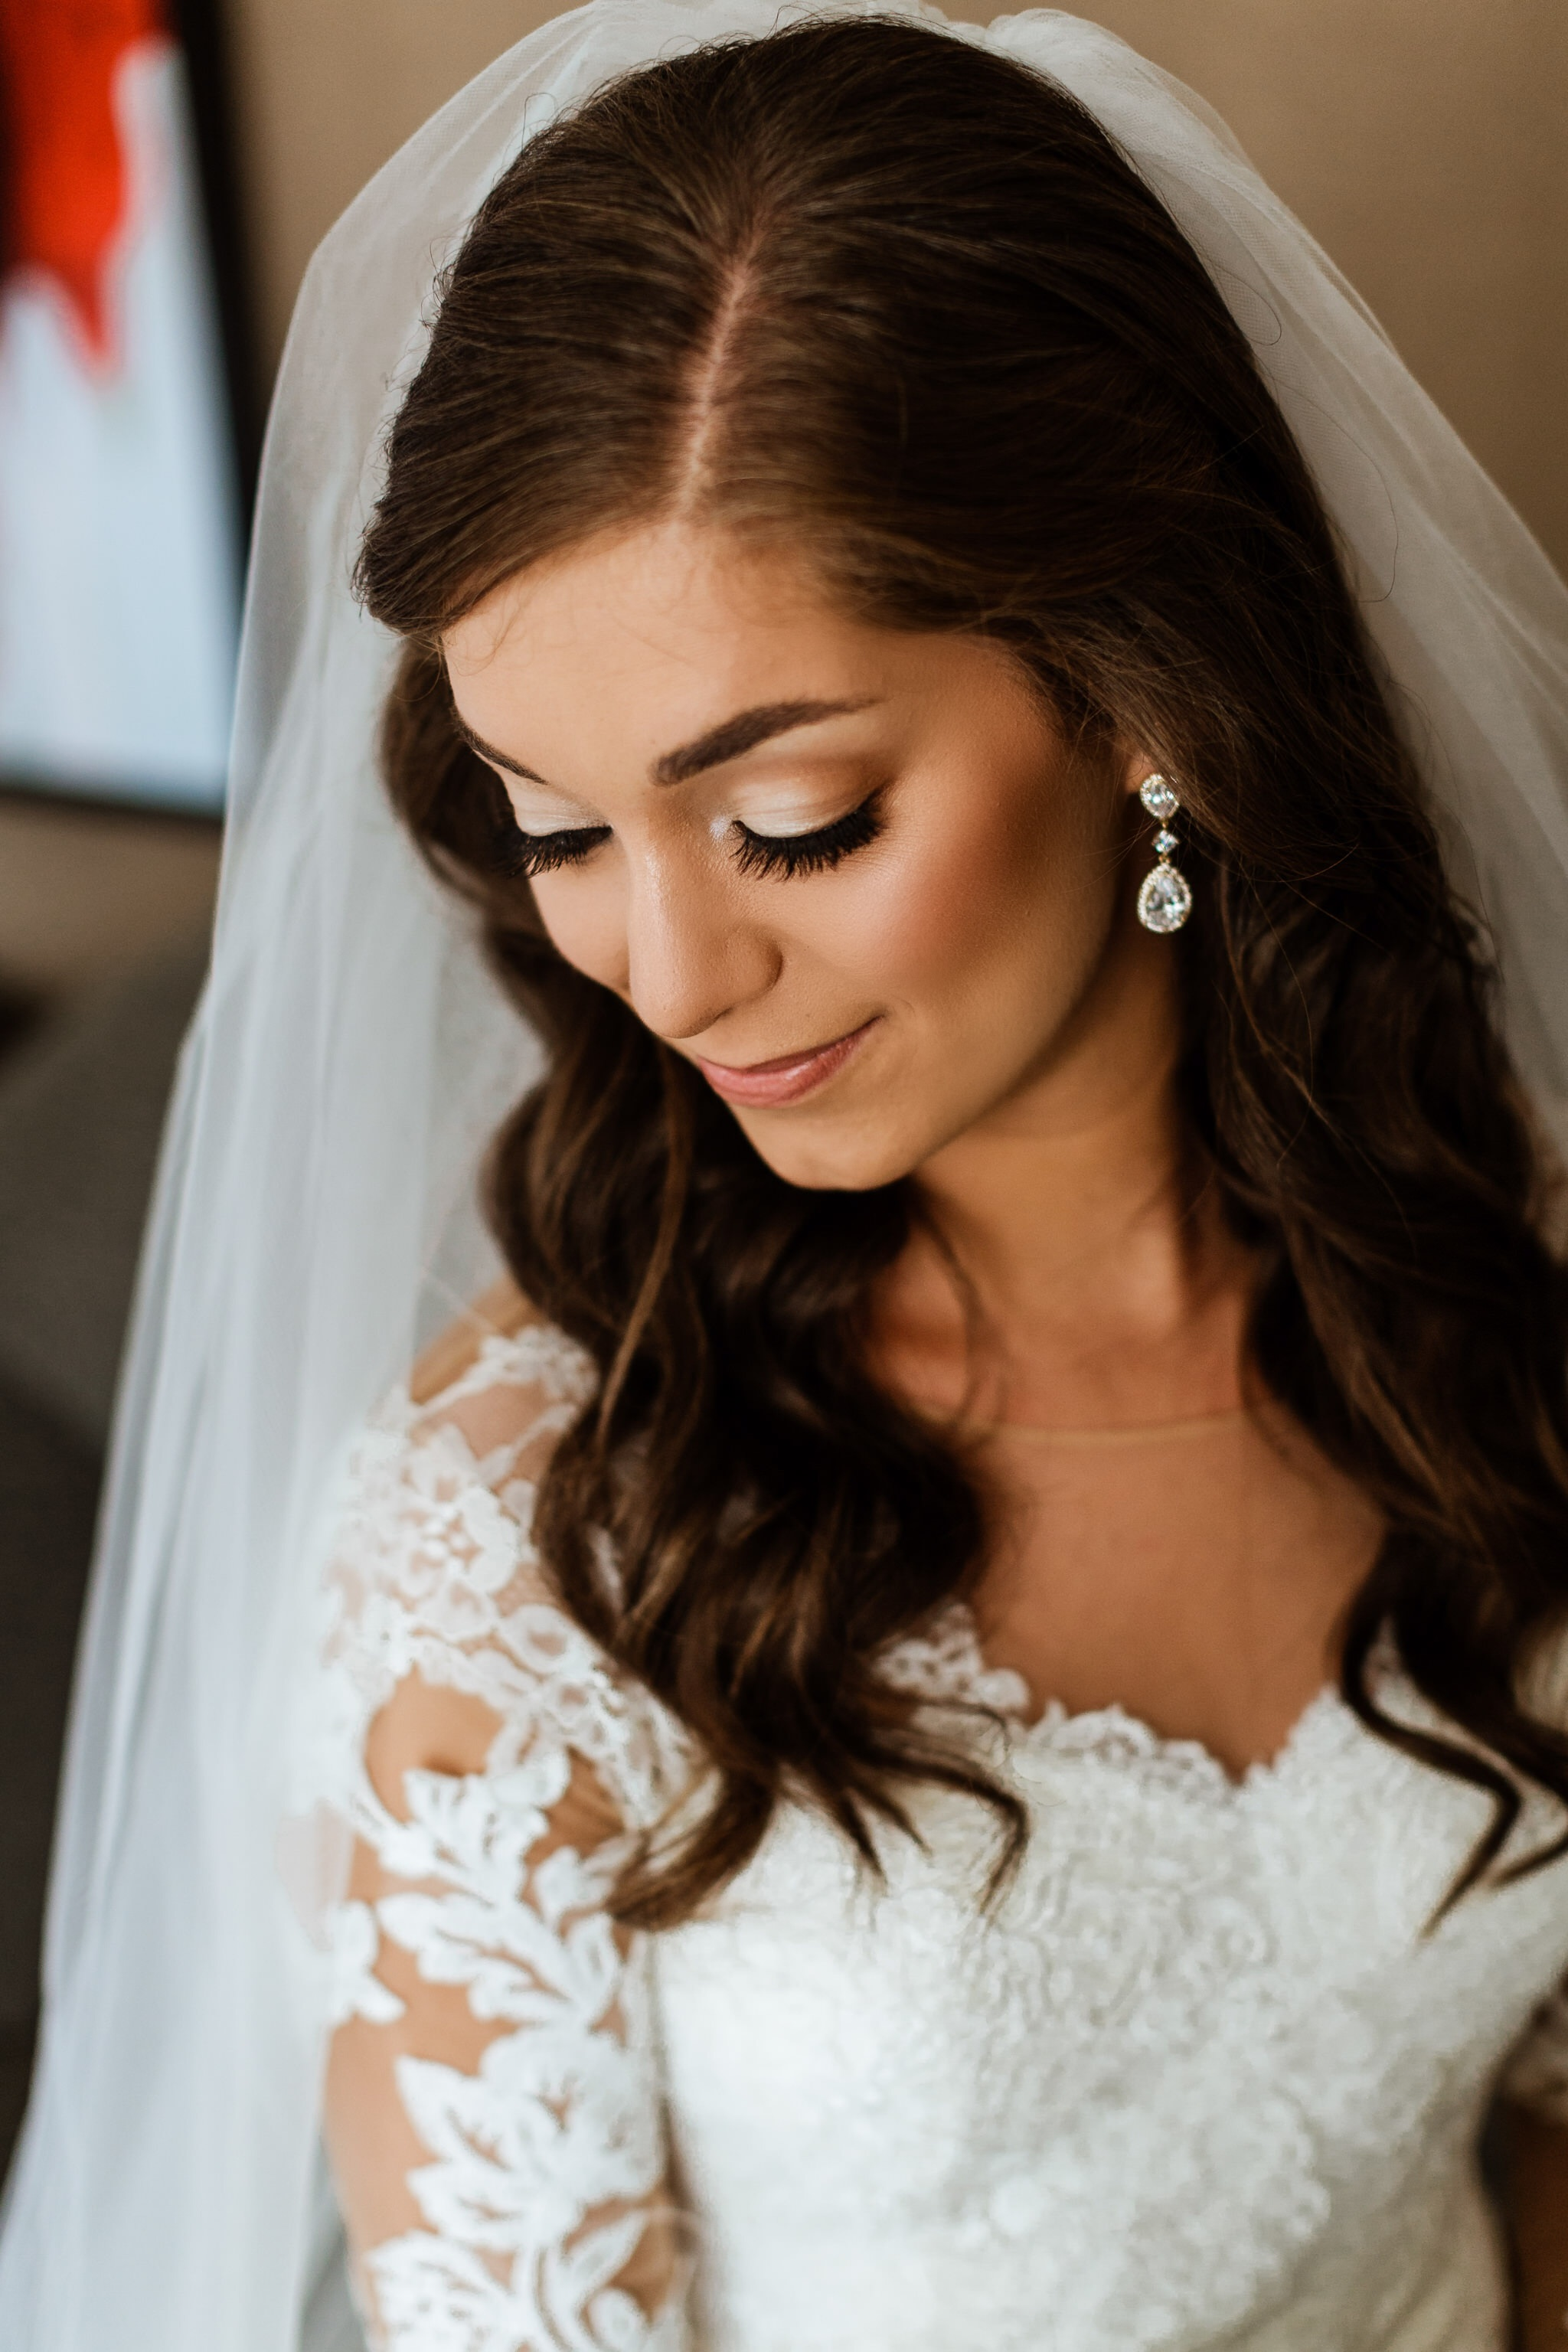 Makeup & Hair by Amela Bego in Chicago, IL